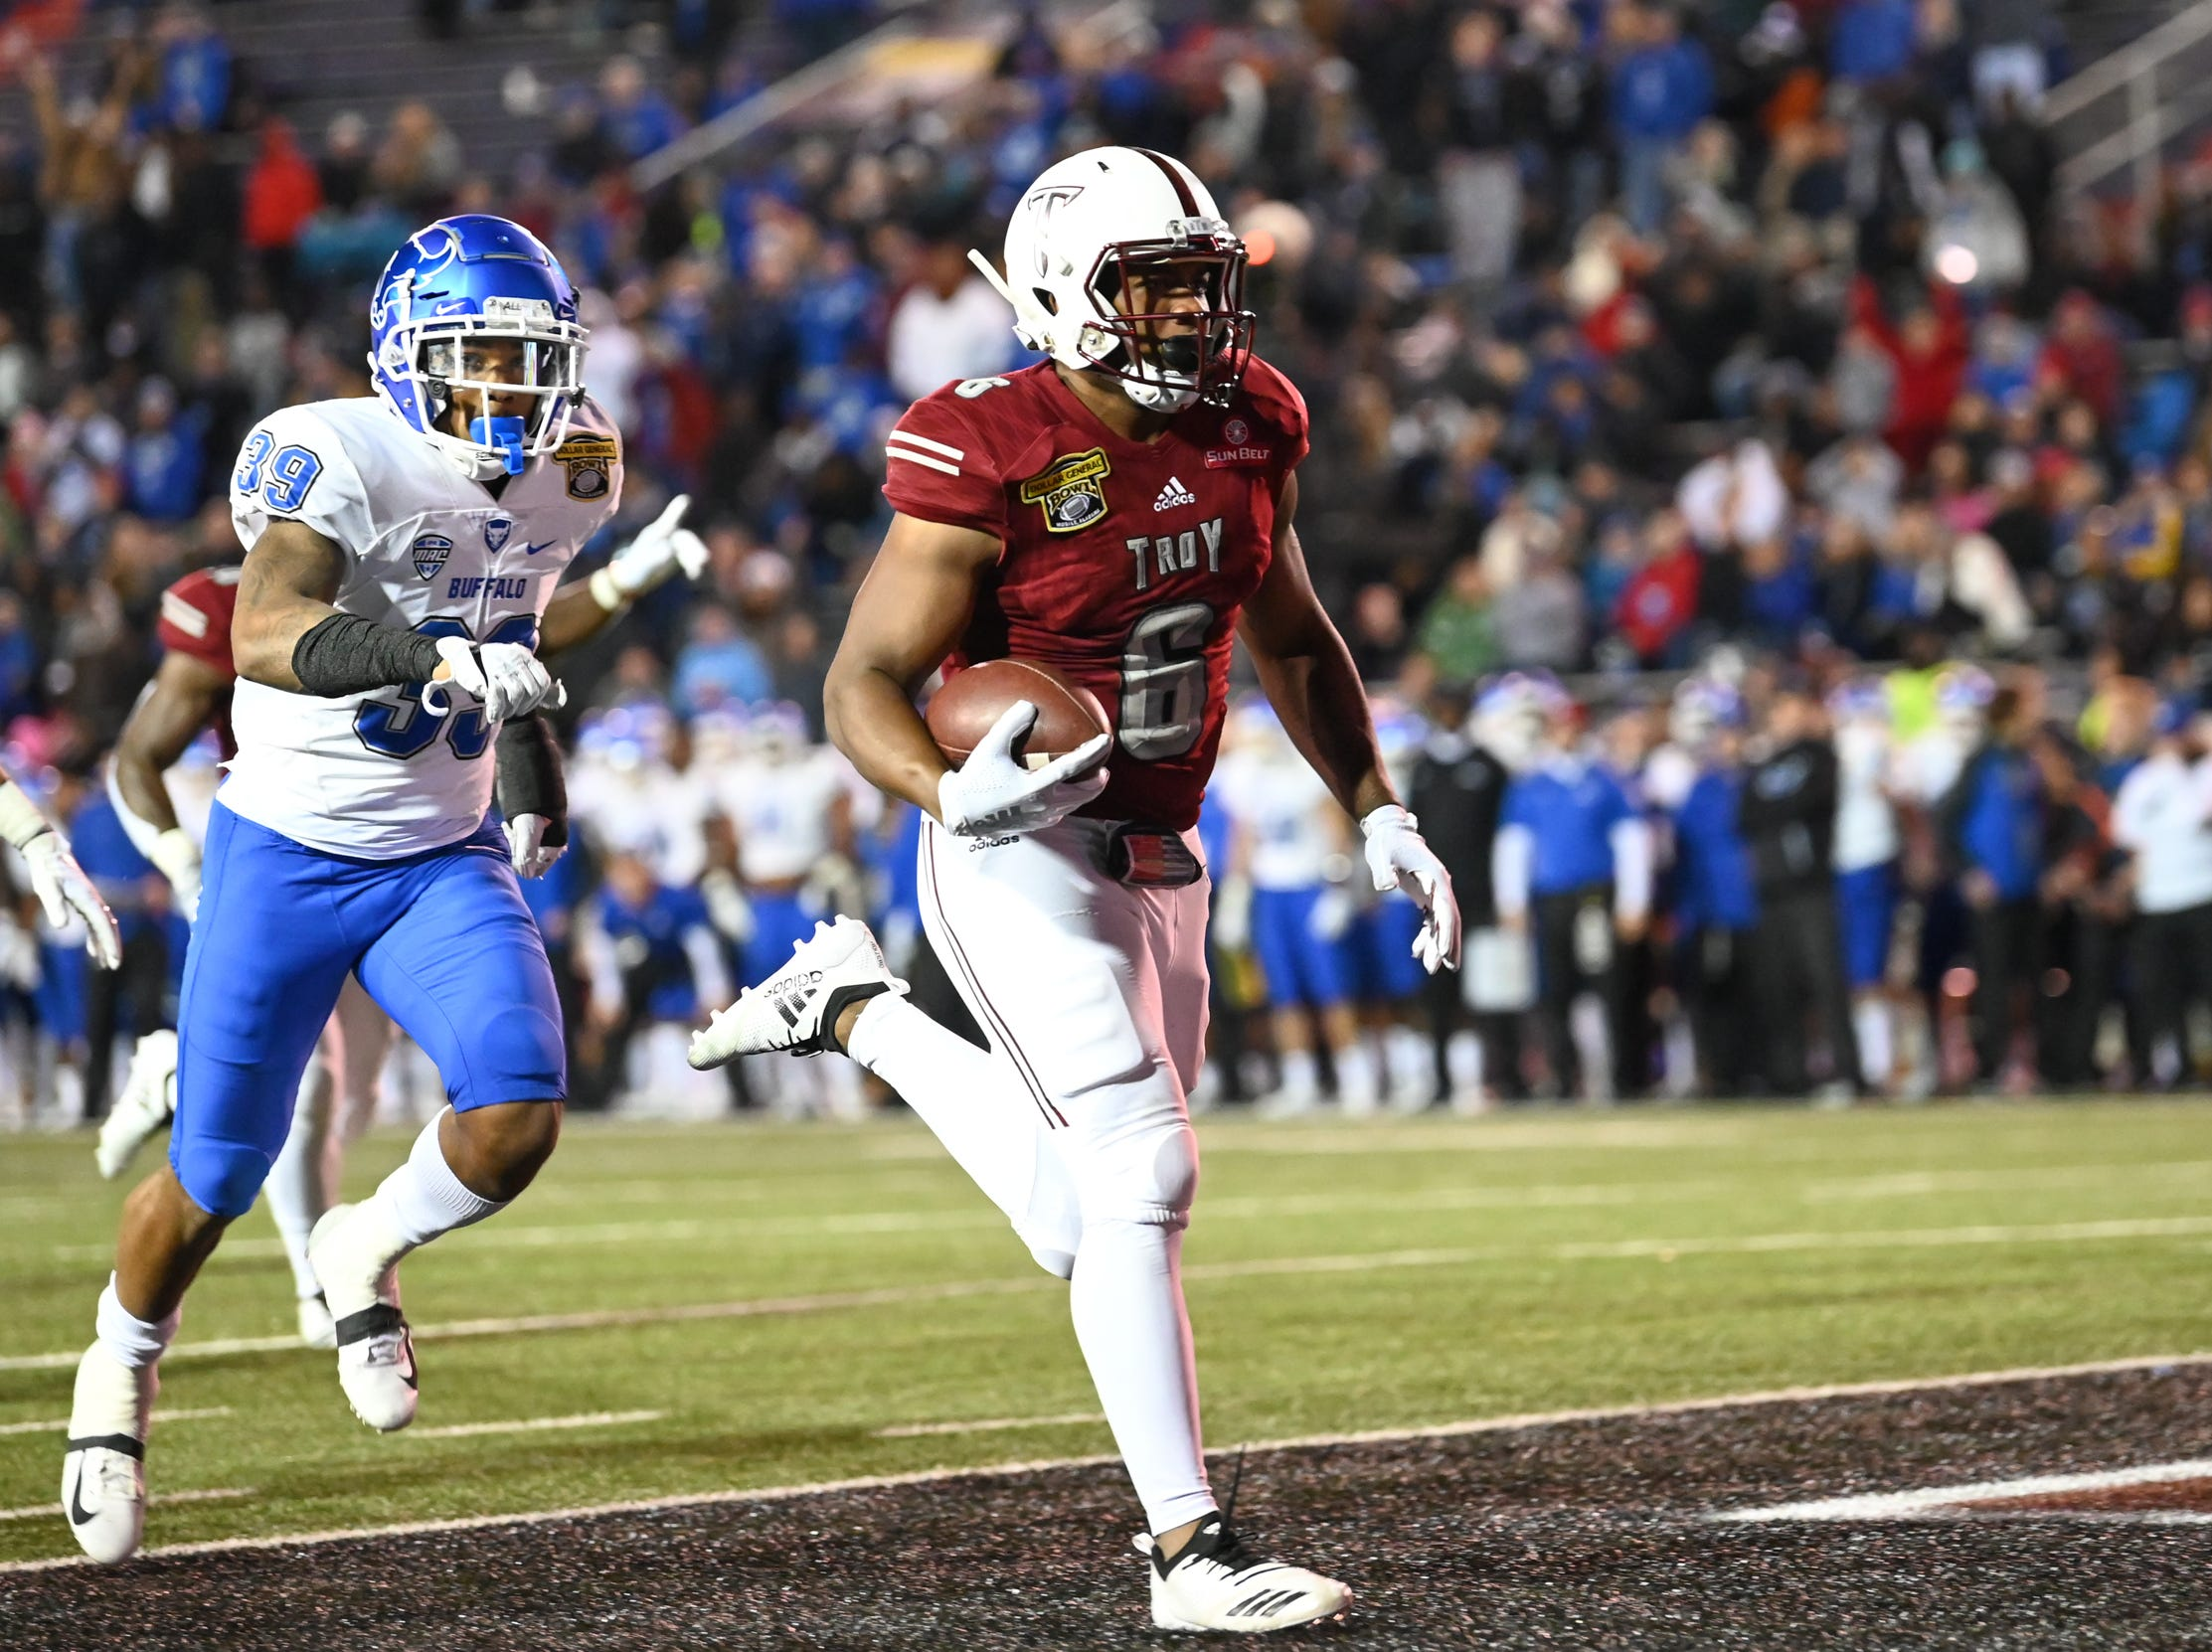 Troy Trojans wide receiver Sidney Davis (6) runs into the end zone for a touchdown during the second half of the Dollar General Bowl held at Ladd-Peebles Stadium in Mobile on Saturday, Dec. 22, 2018.